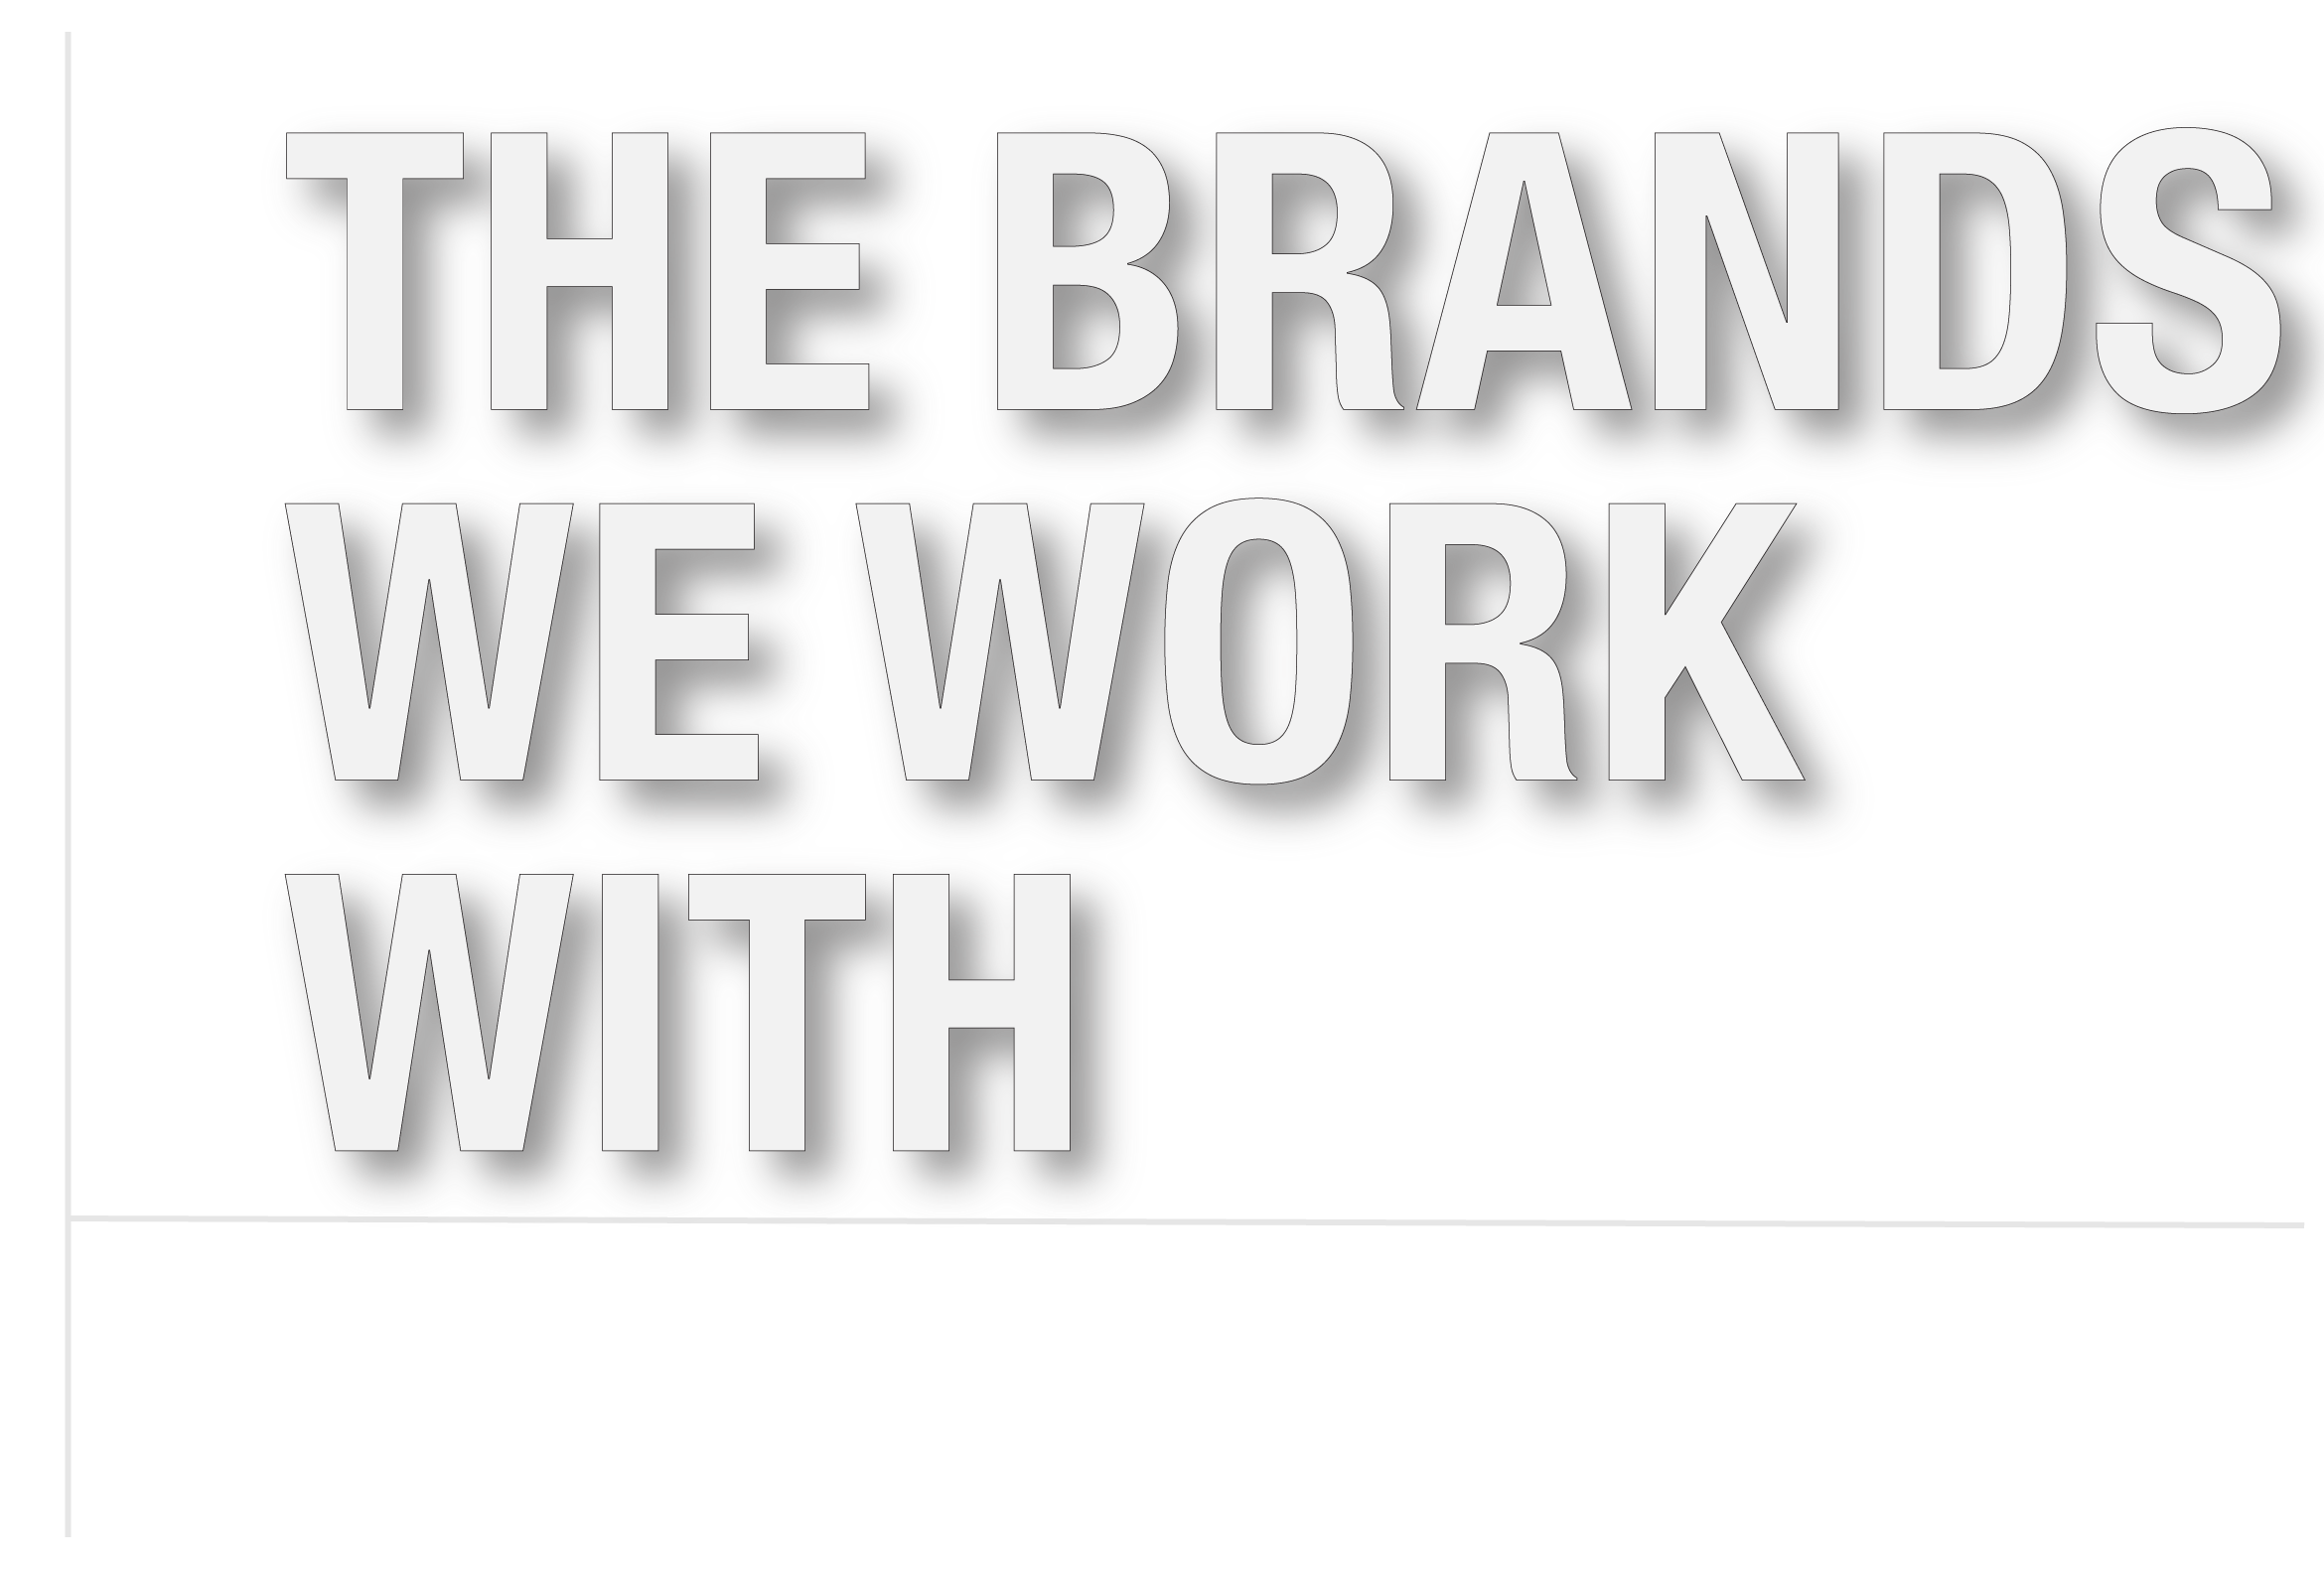 THeBRANDSWEWORKWITH2.png